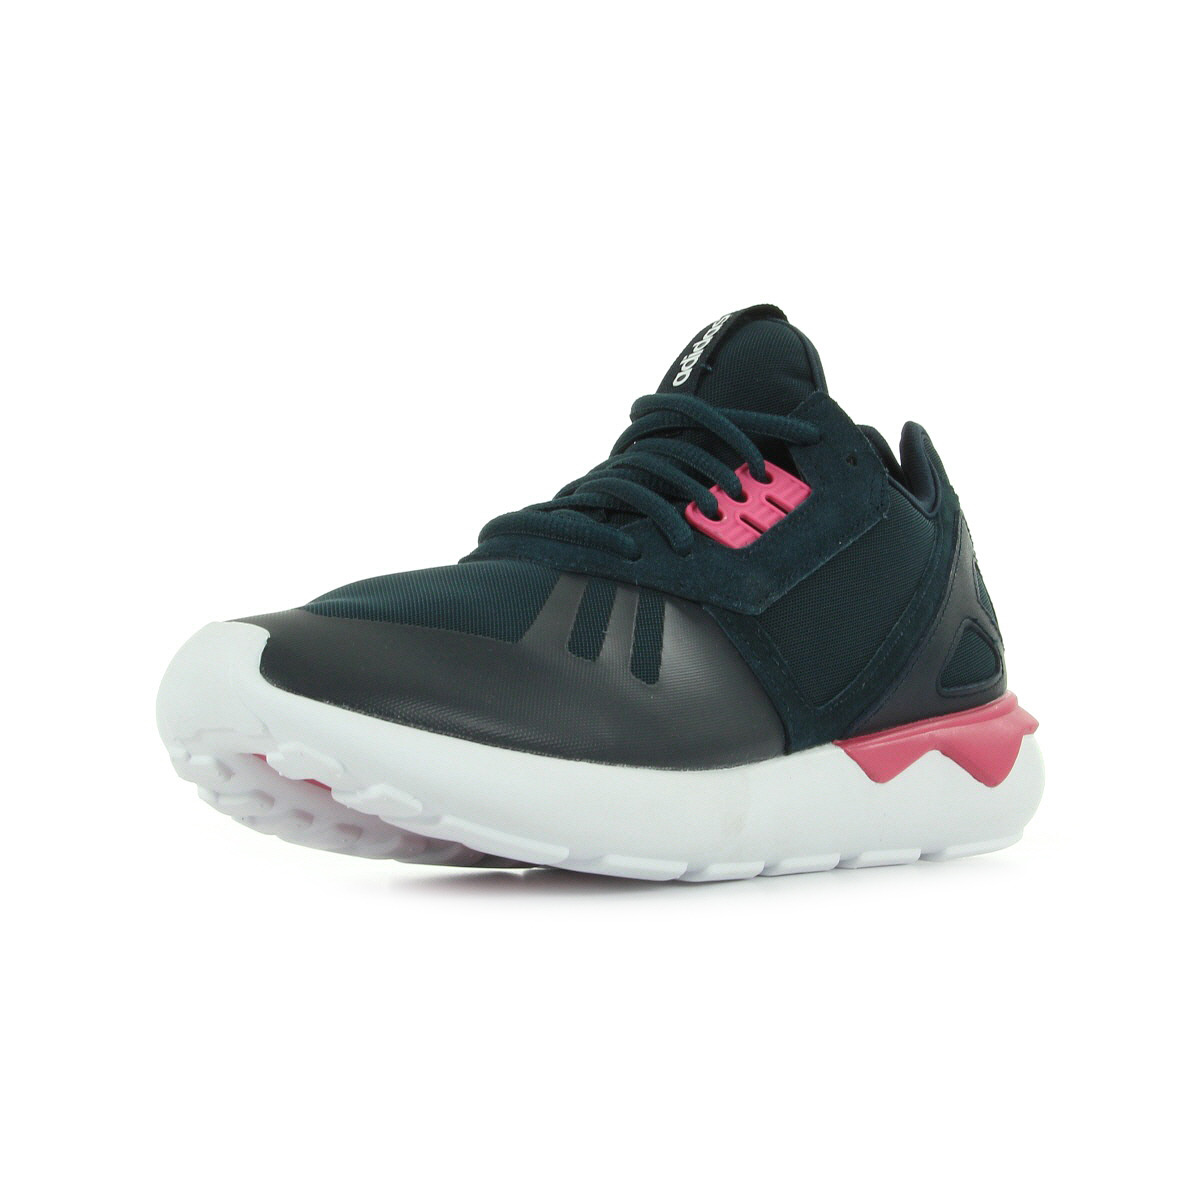 adidas Tubular Runner W B26300, Baskets mode femme